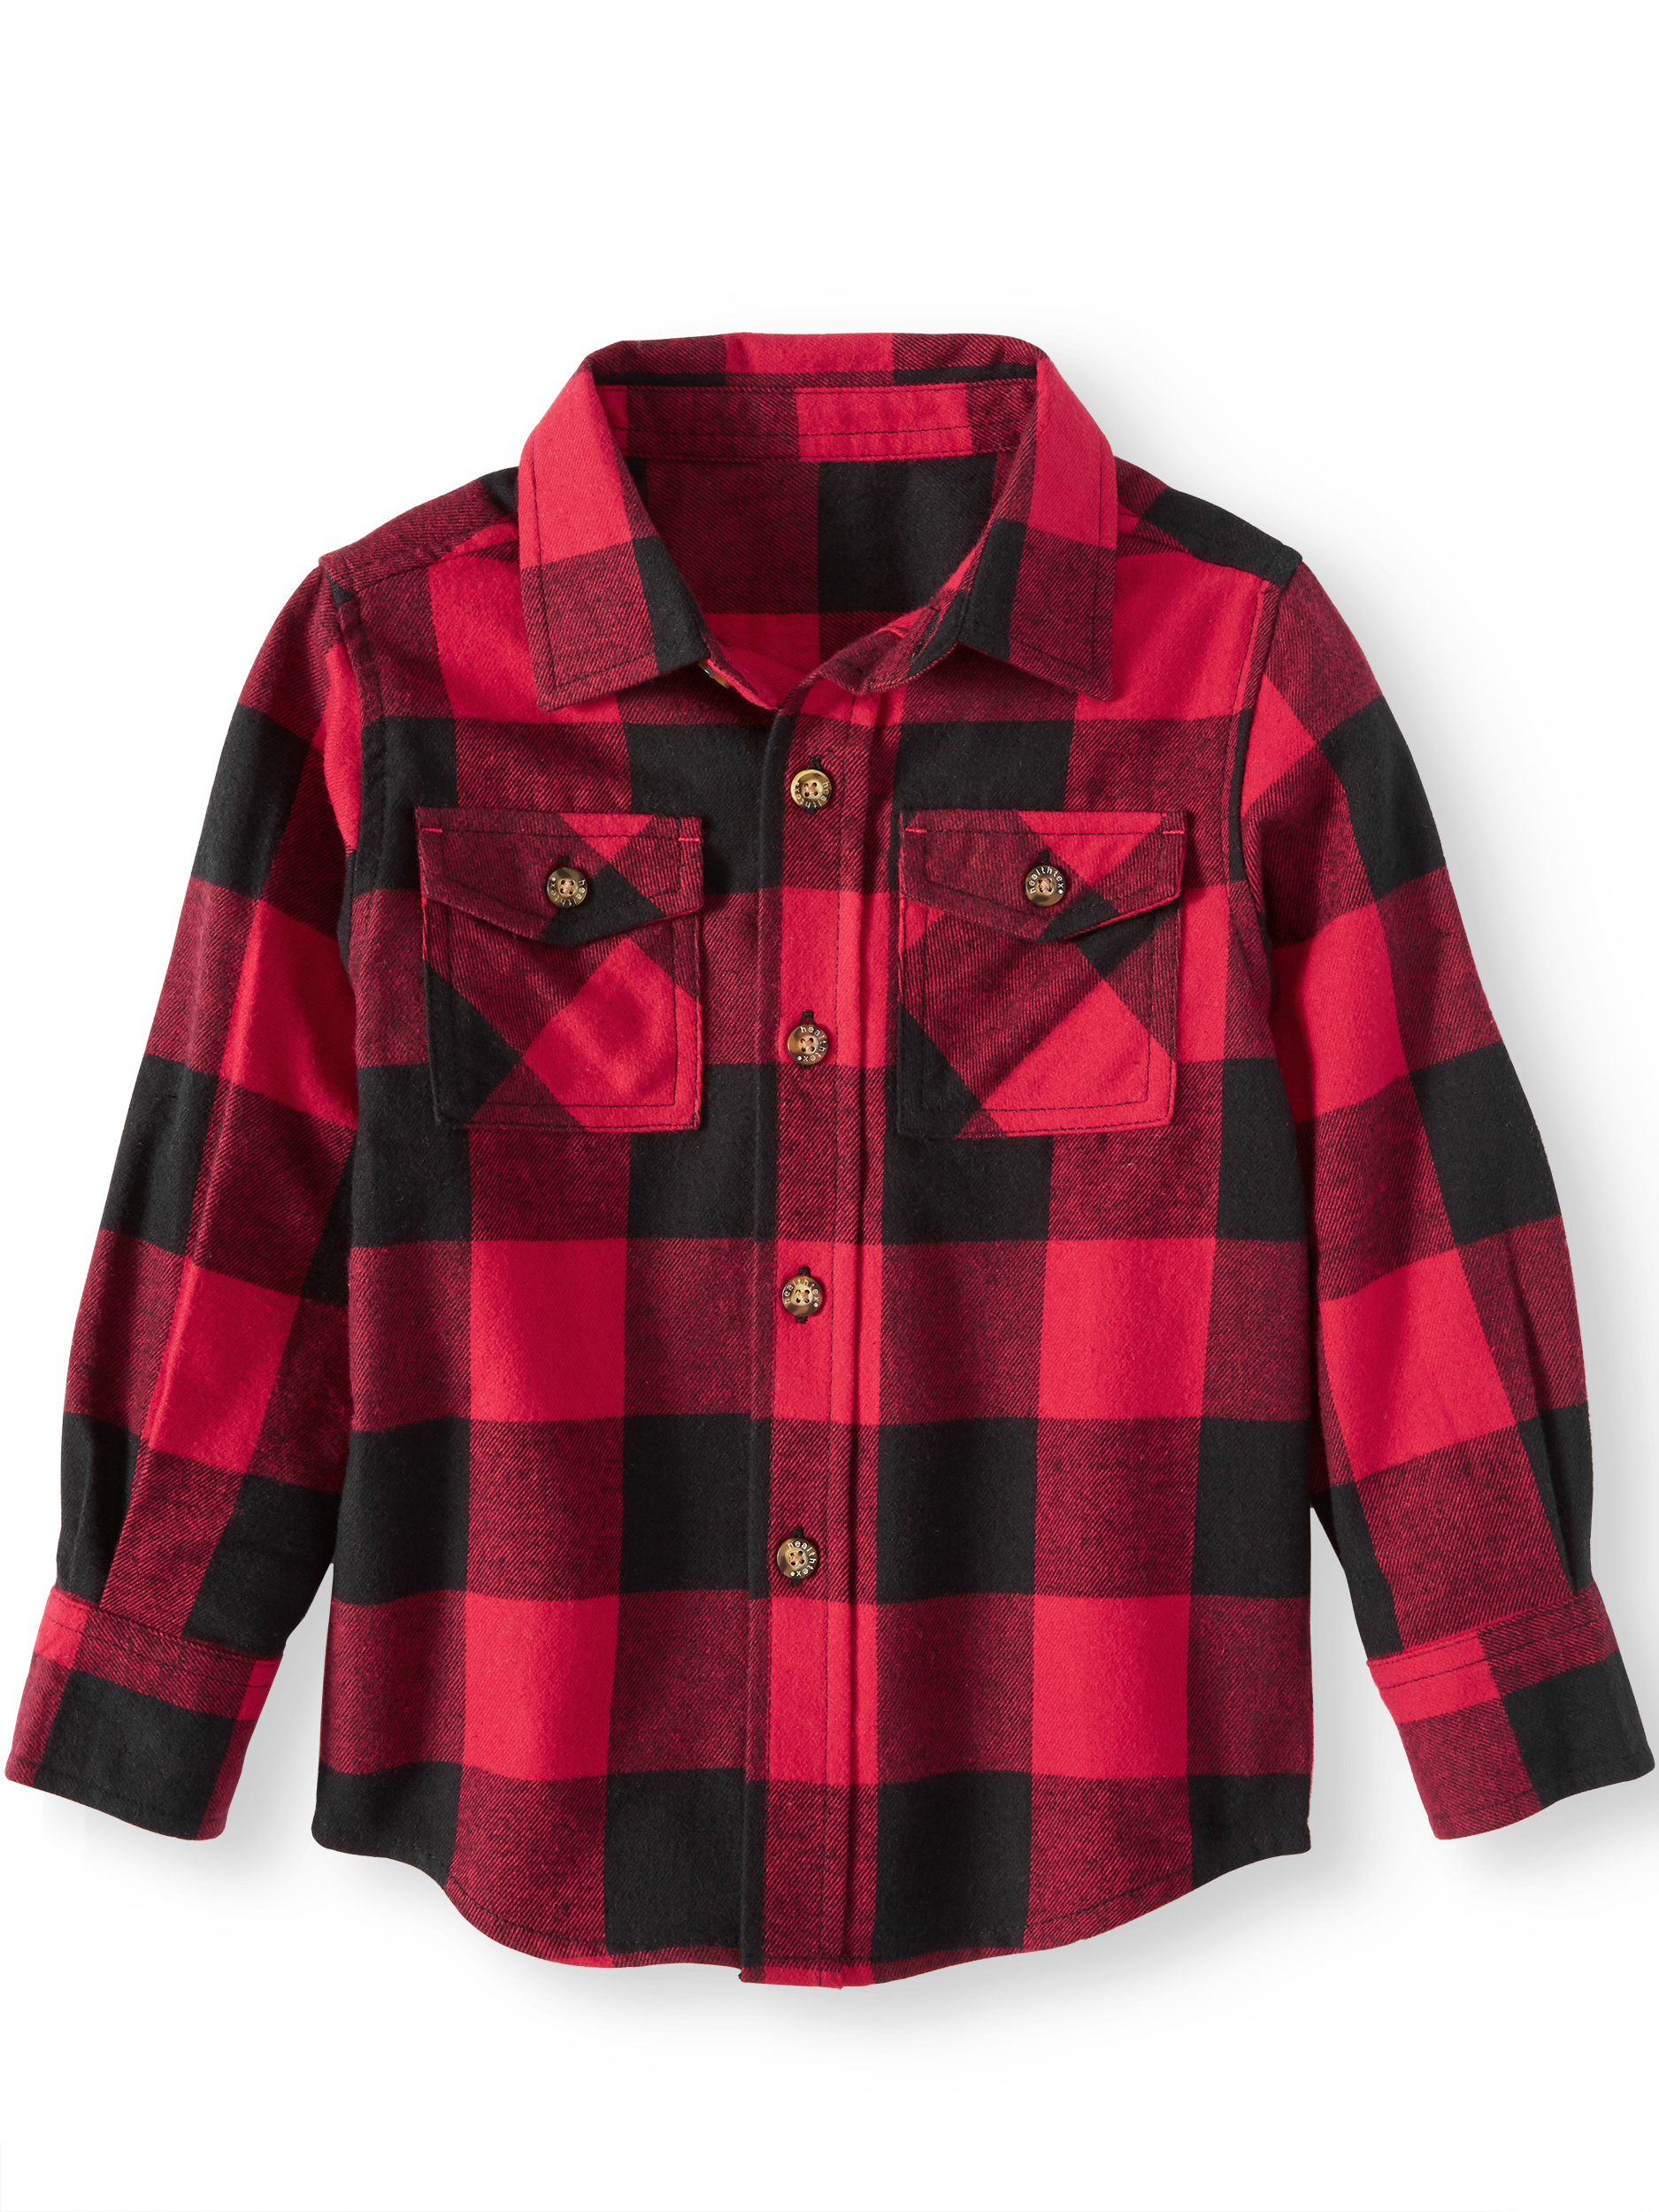 BABY GIRL HEALTHTEX OLD FASHIONED HOLIDAY CHRISTMAS DRESS SIZE 3T NEW PLAID